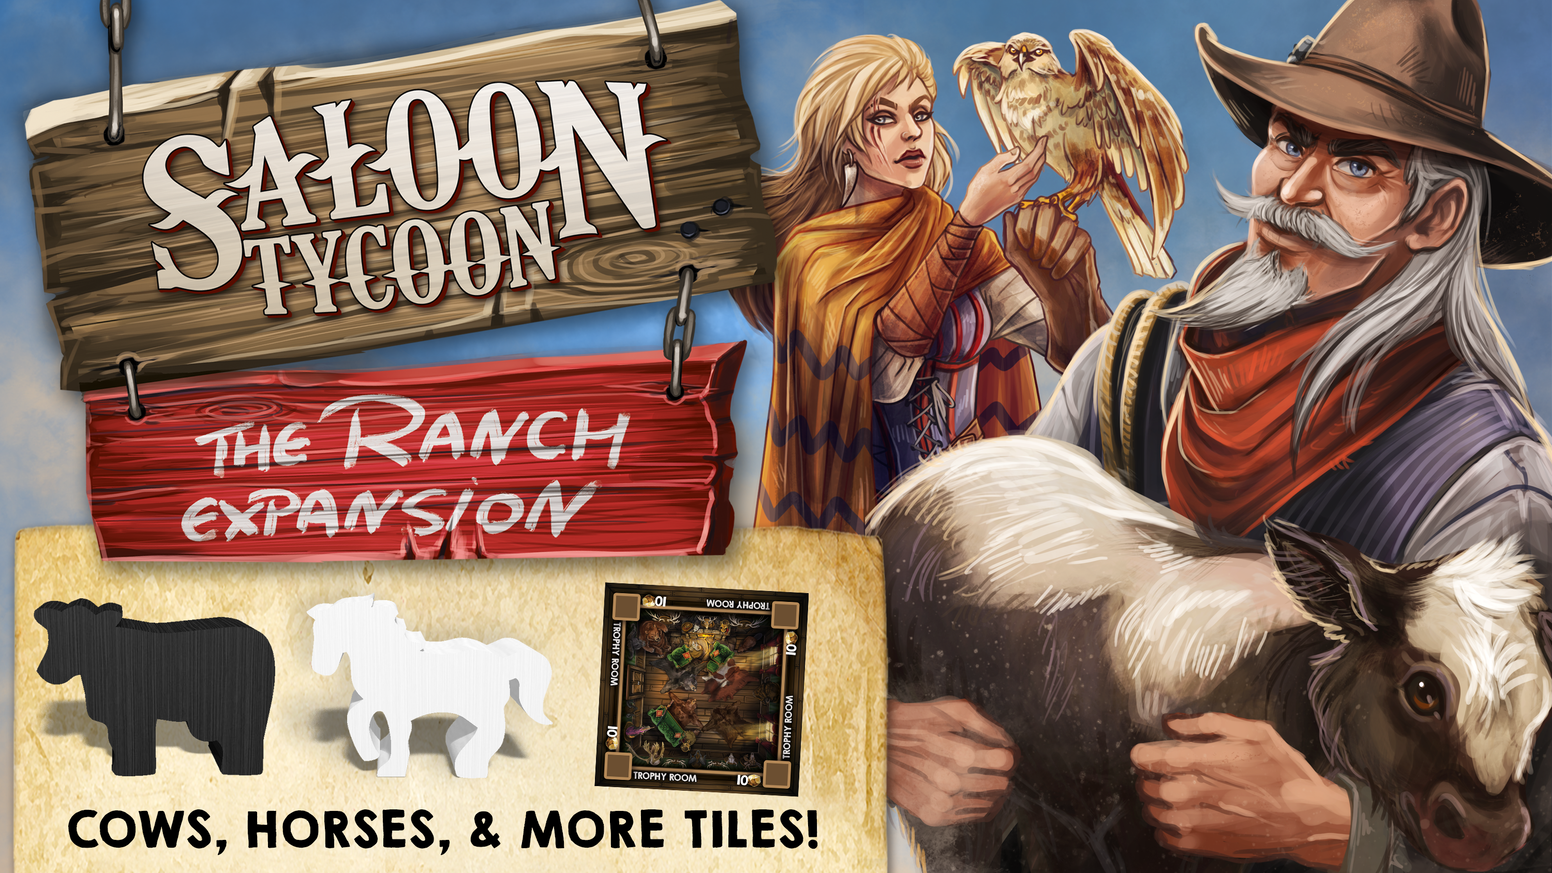 Yee-Haw! Introducing The Ranch Expansion for Saloon Tycoon, the 3D tile laying game set in the old west. Base game also available.